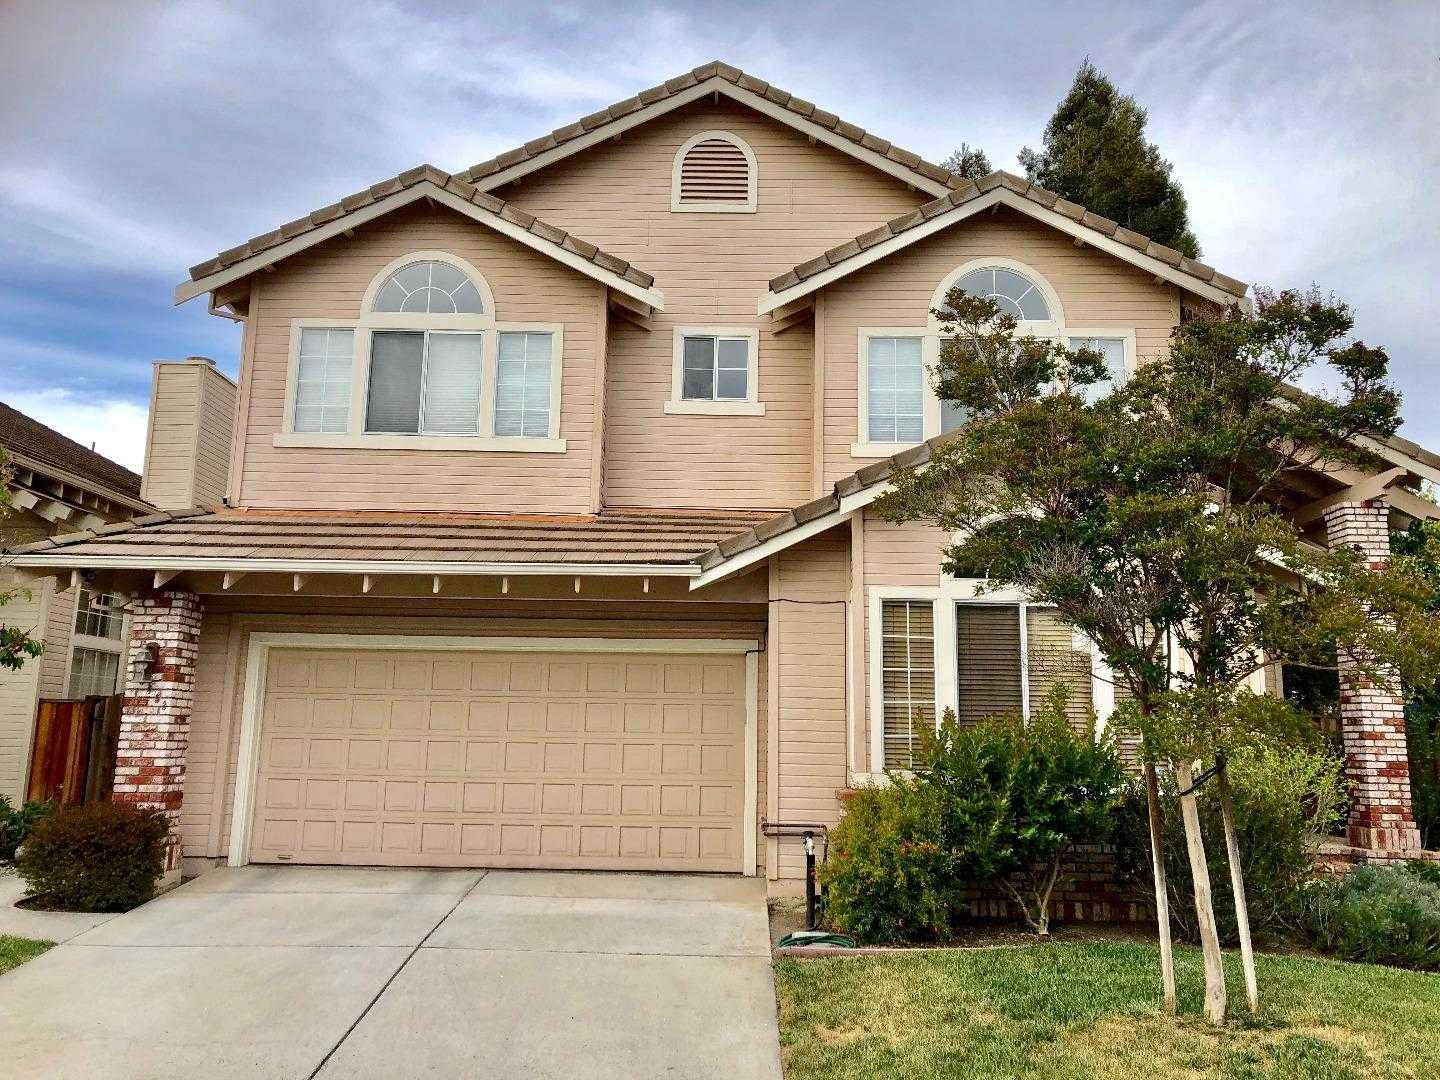 $2,750,000 - 4Br/3Ba -  for Sale in Cupertino